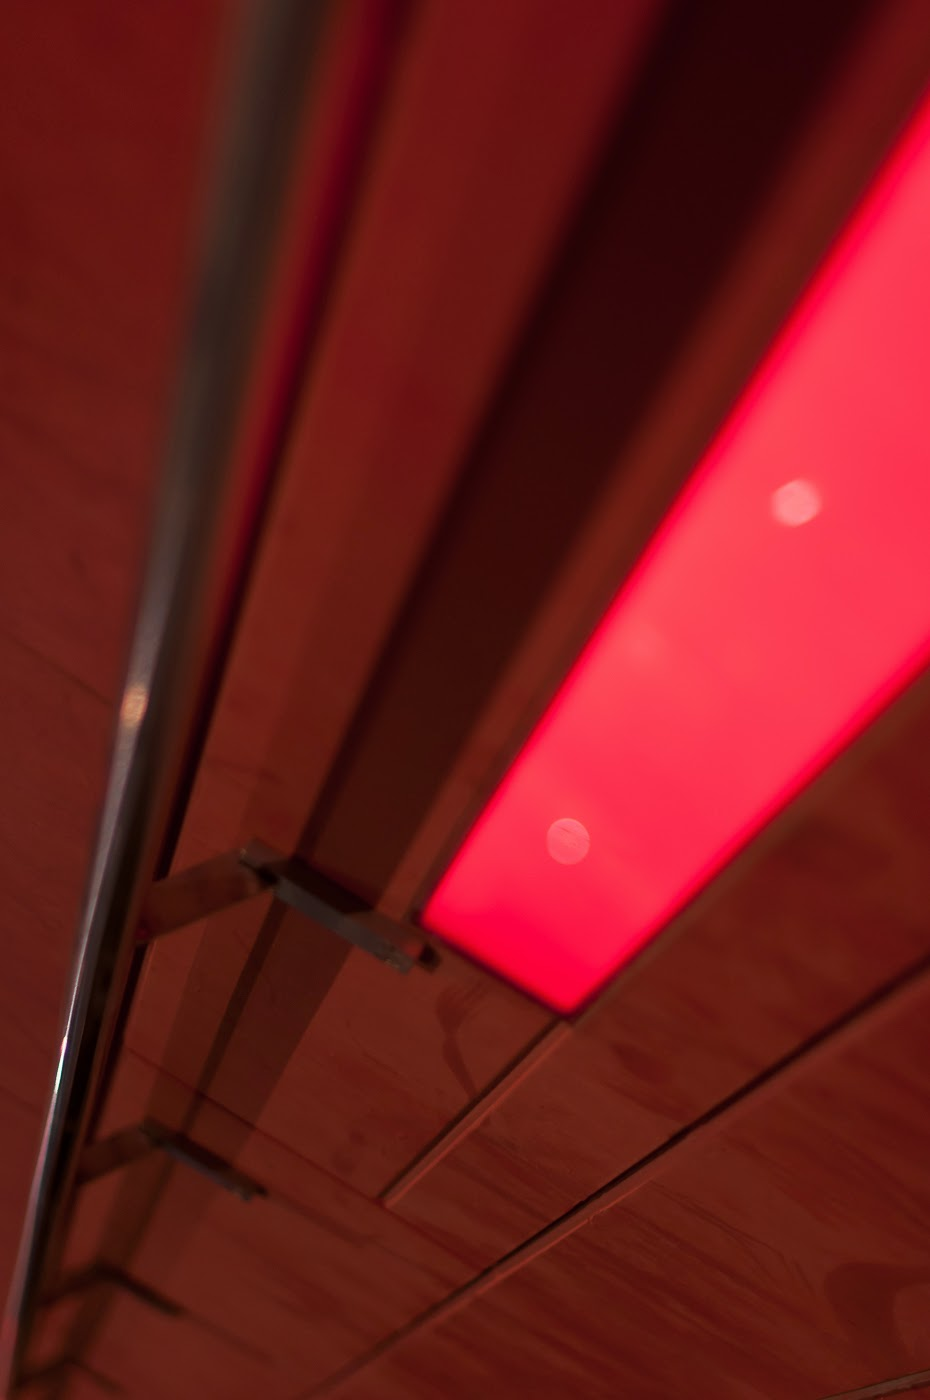 Marcus O'Reilly, Marcus oreilly, red steps, red stairs, southbank, Melbourne, Australia, abstract, abstraction, TKTS, structure, distinctive, tim macauley, detail, façade, abstractional, architect, architectural, architects